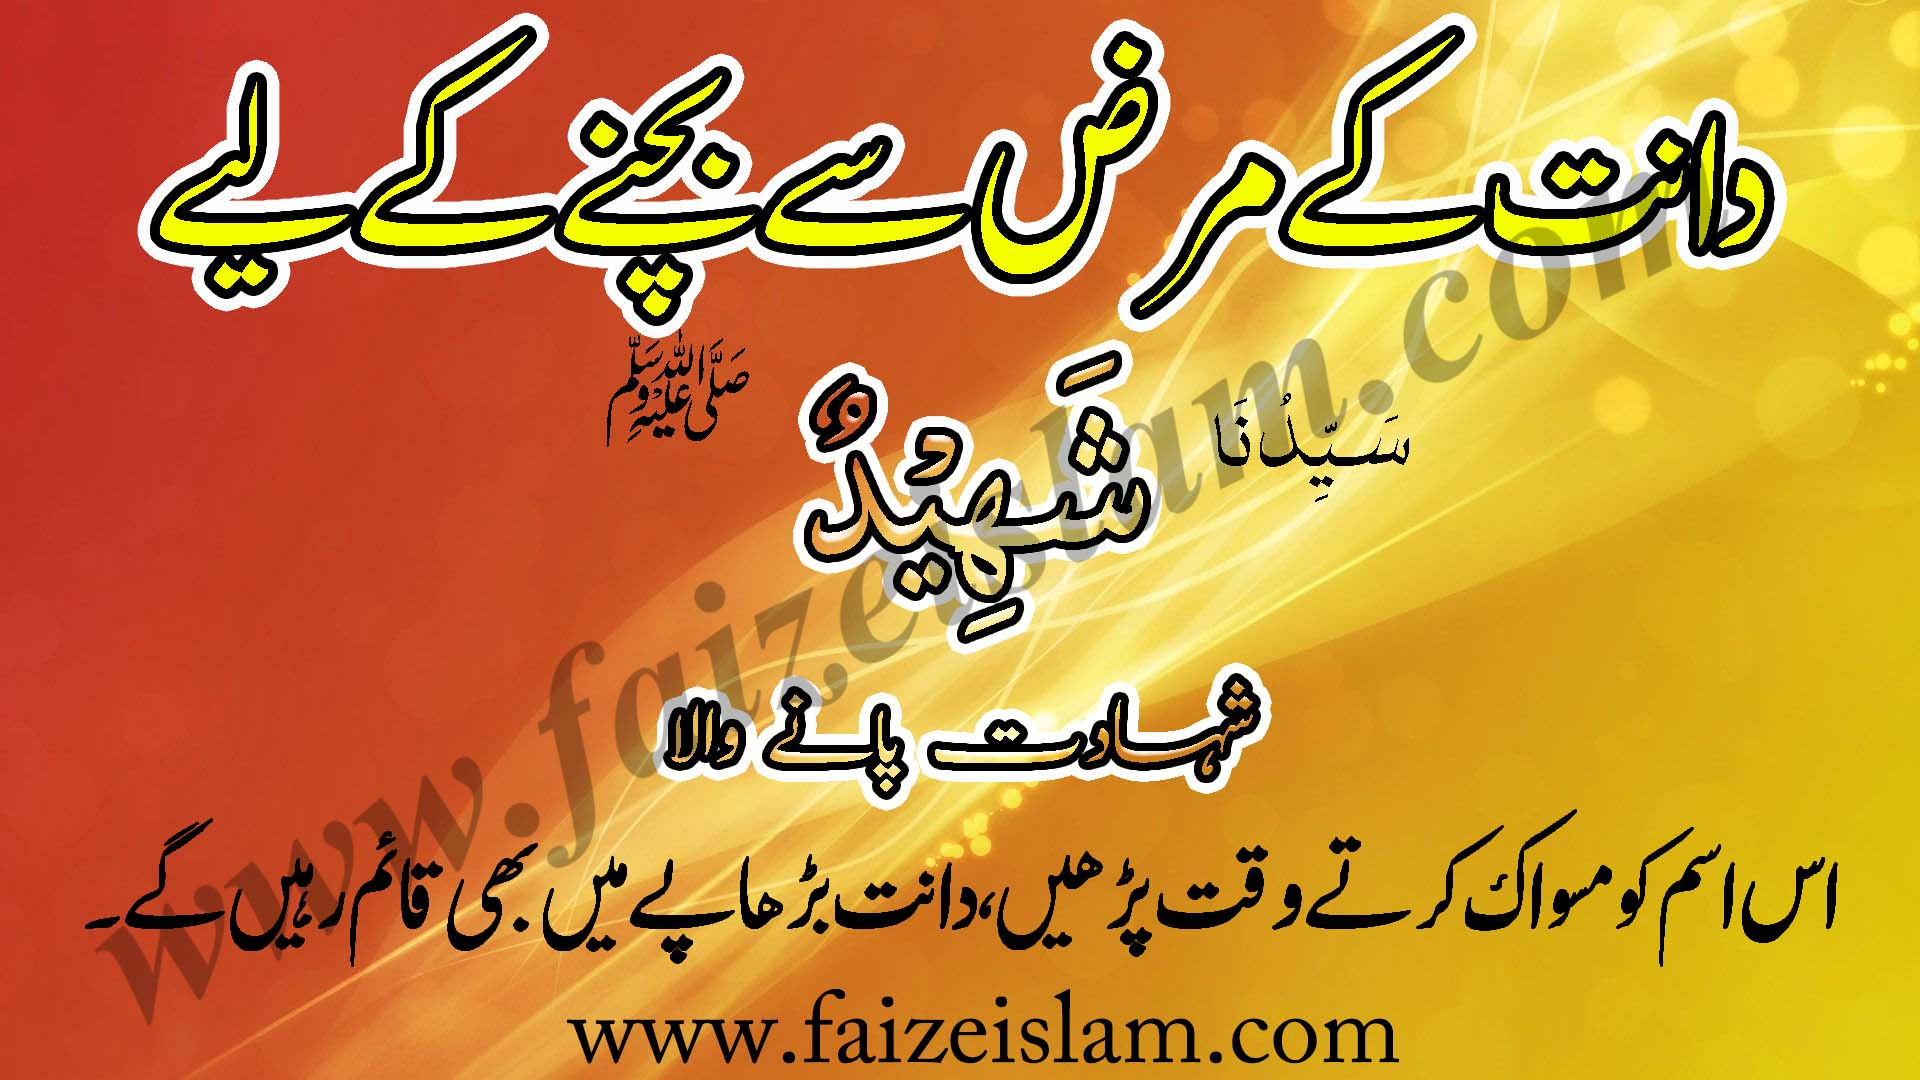 Wazifa for Teeth Pain - Daant Kar Marz Say Bachnay Kay Liye Wazifa In Urdu